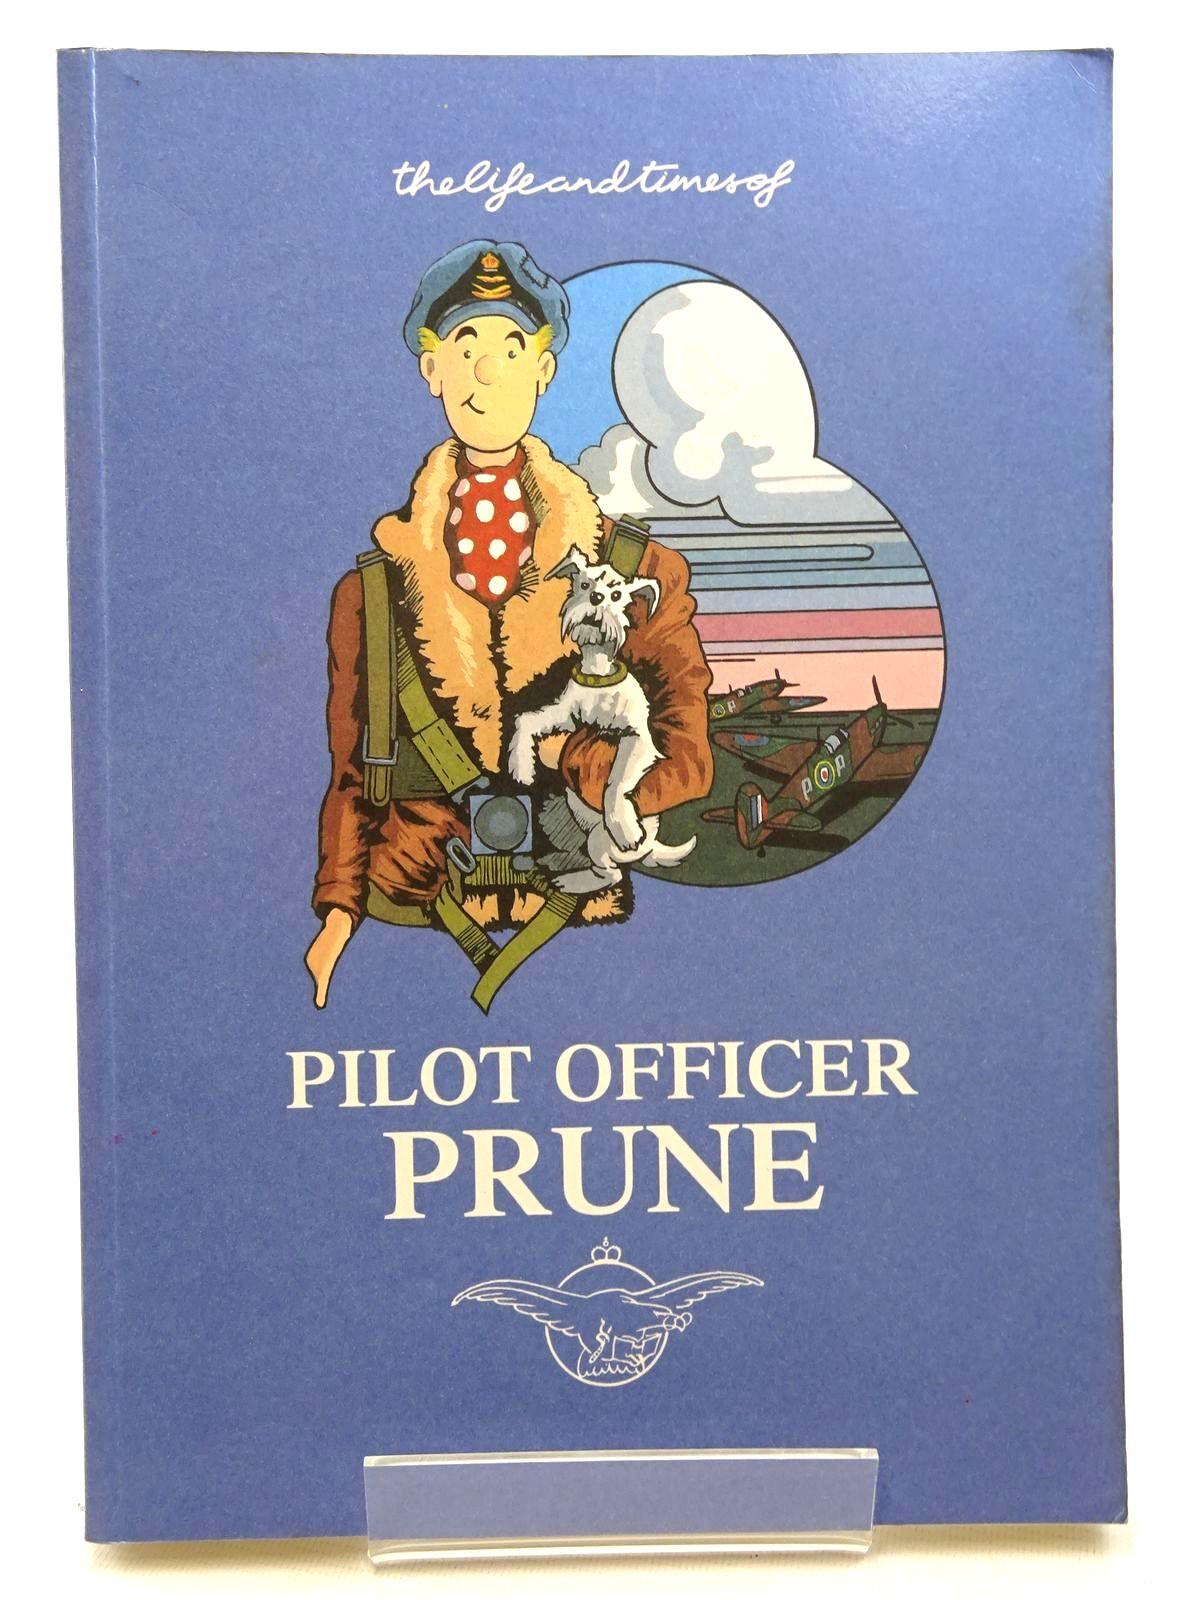 Photo of THE LIFE AND TIMES OF PILOT OFFICER PRUNE written by Hamilton, Tim illustrated by Hamilton, Tim published by H.M.S.O. (STOCK CODE: 1610468)  for sale by Stella & Rose's Books